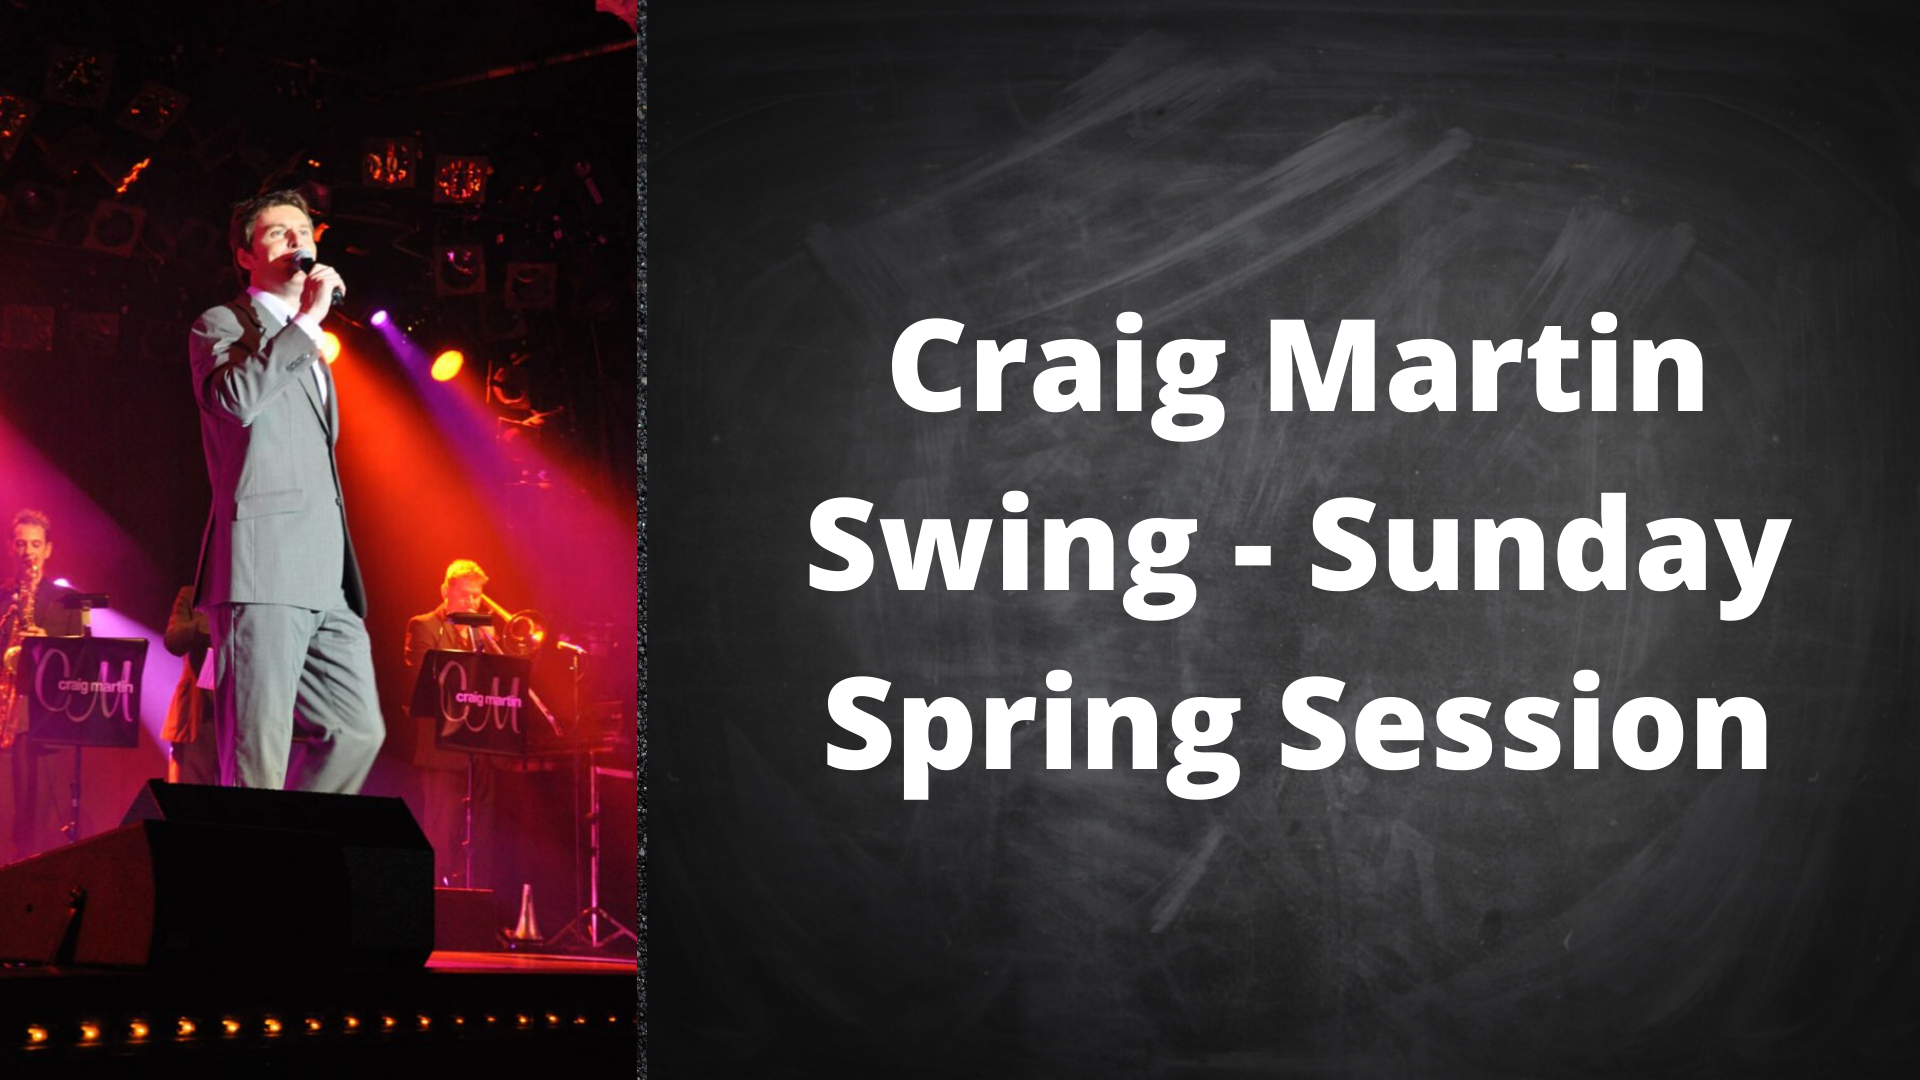 Craig Martin Swings - Sunday Spring Session